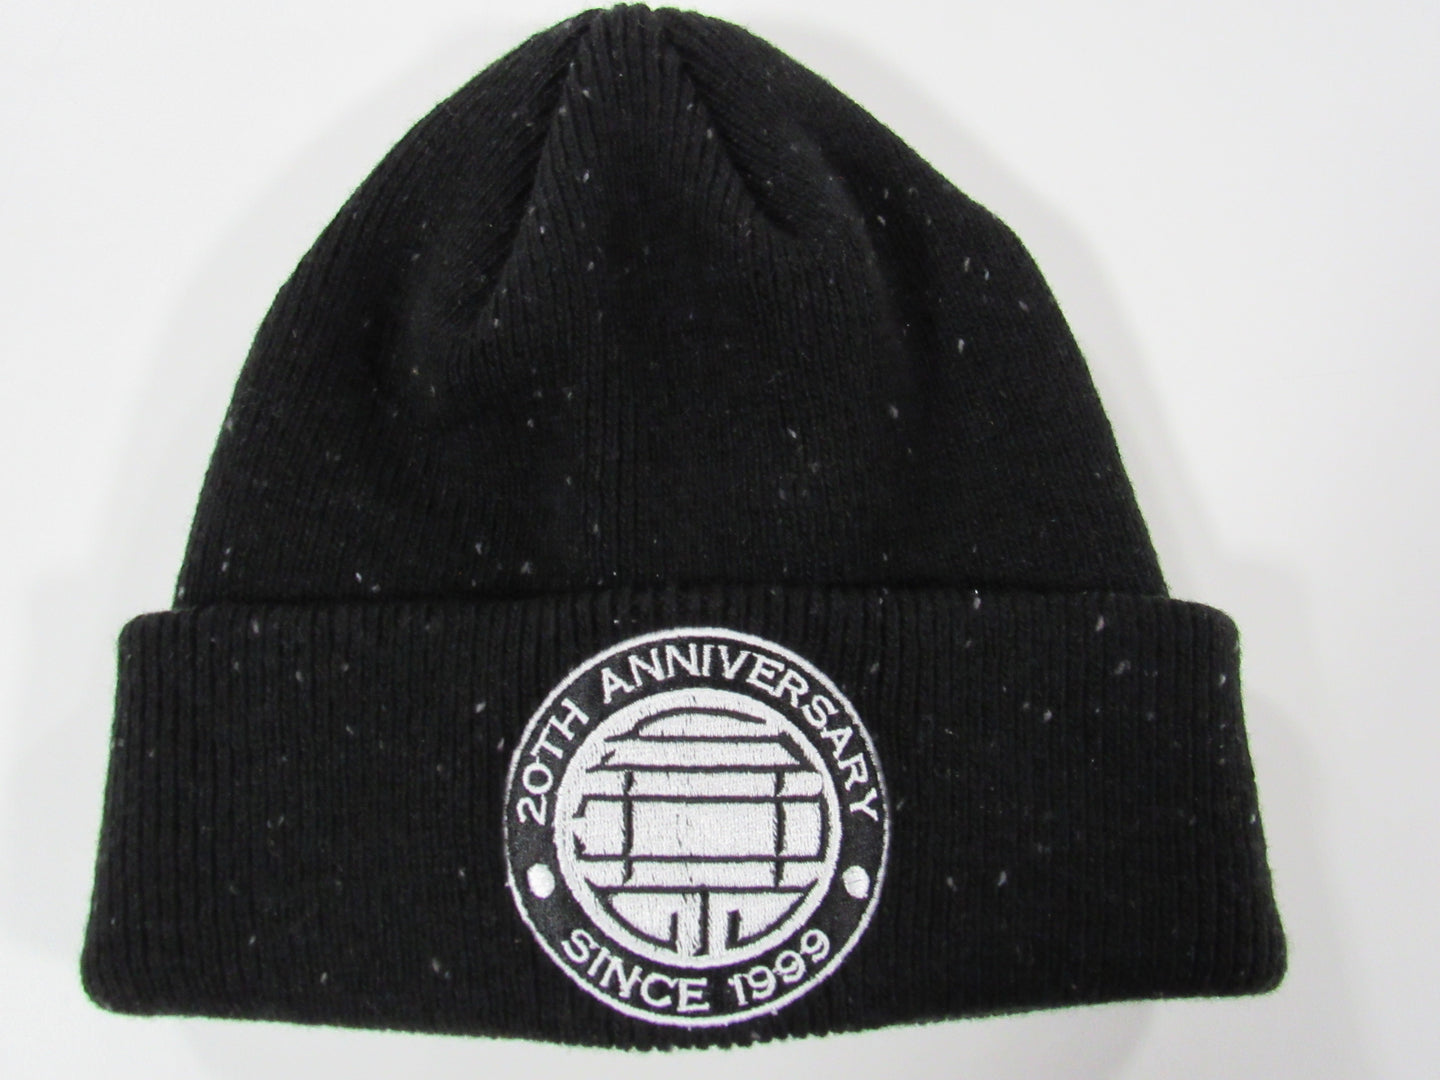 20th Anniversary Speckled Beanie